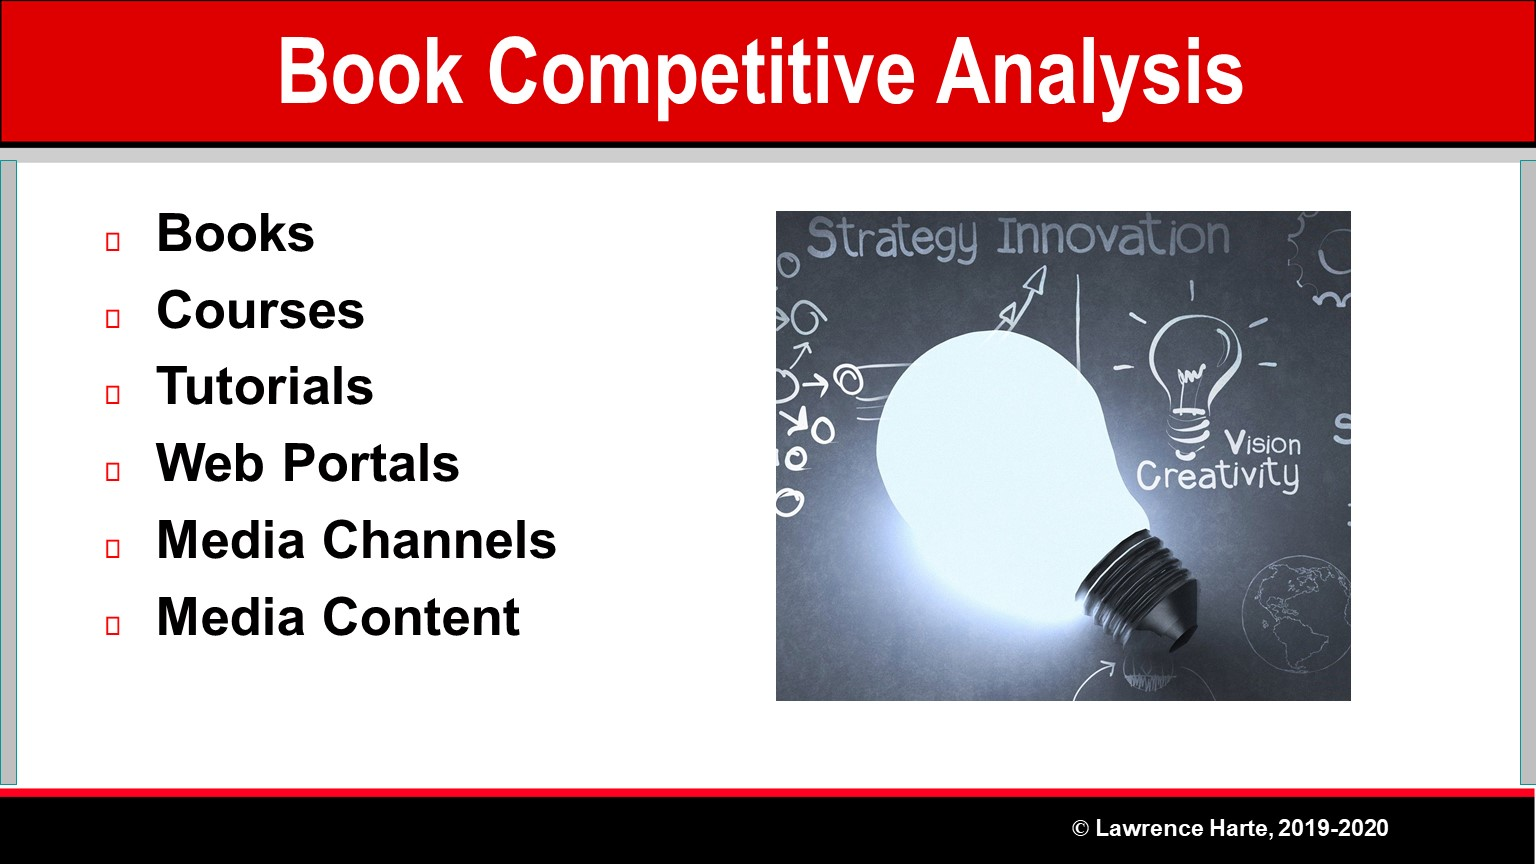 Book Pre-Launch Marketing Competitive Analysis